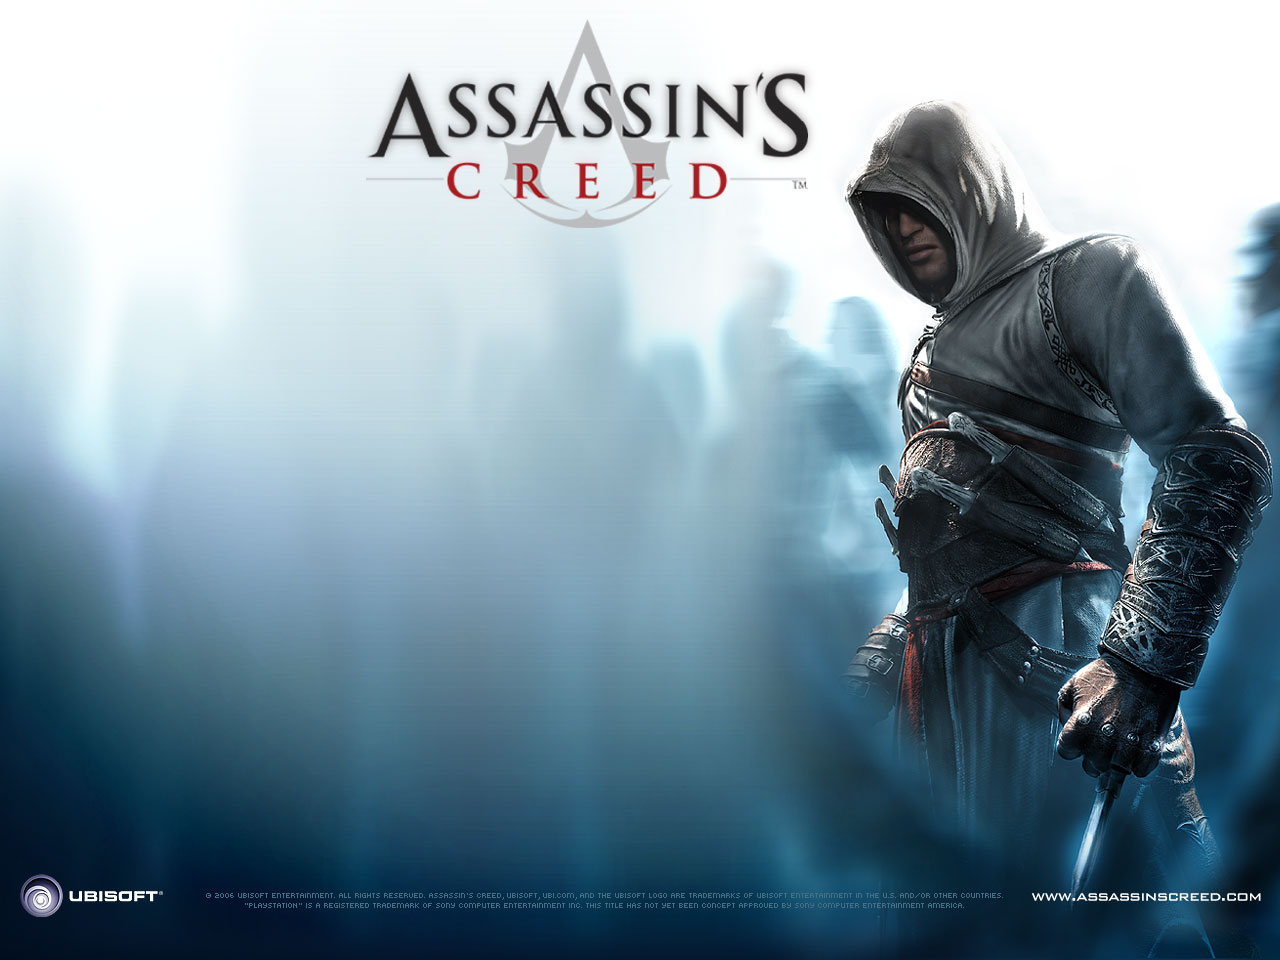 assassins-creed-1280-960-01.jpg